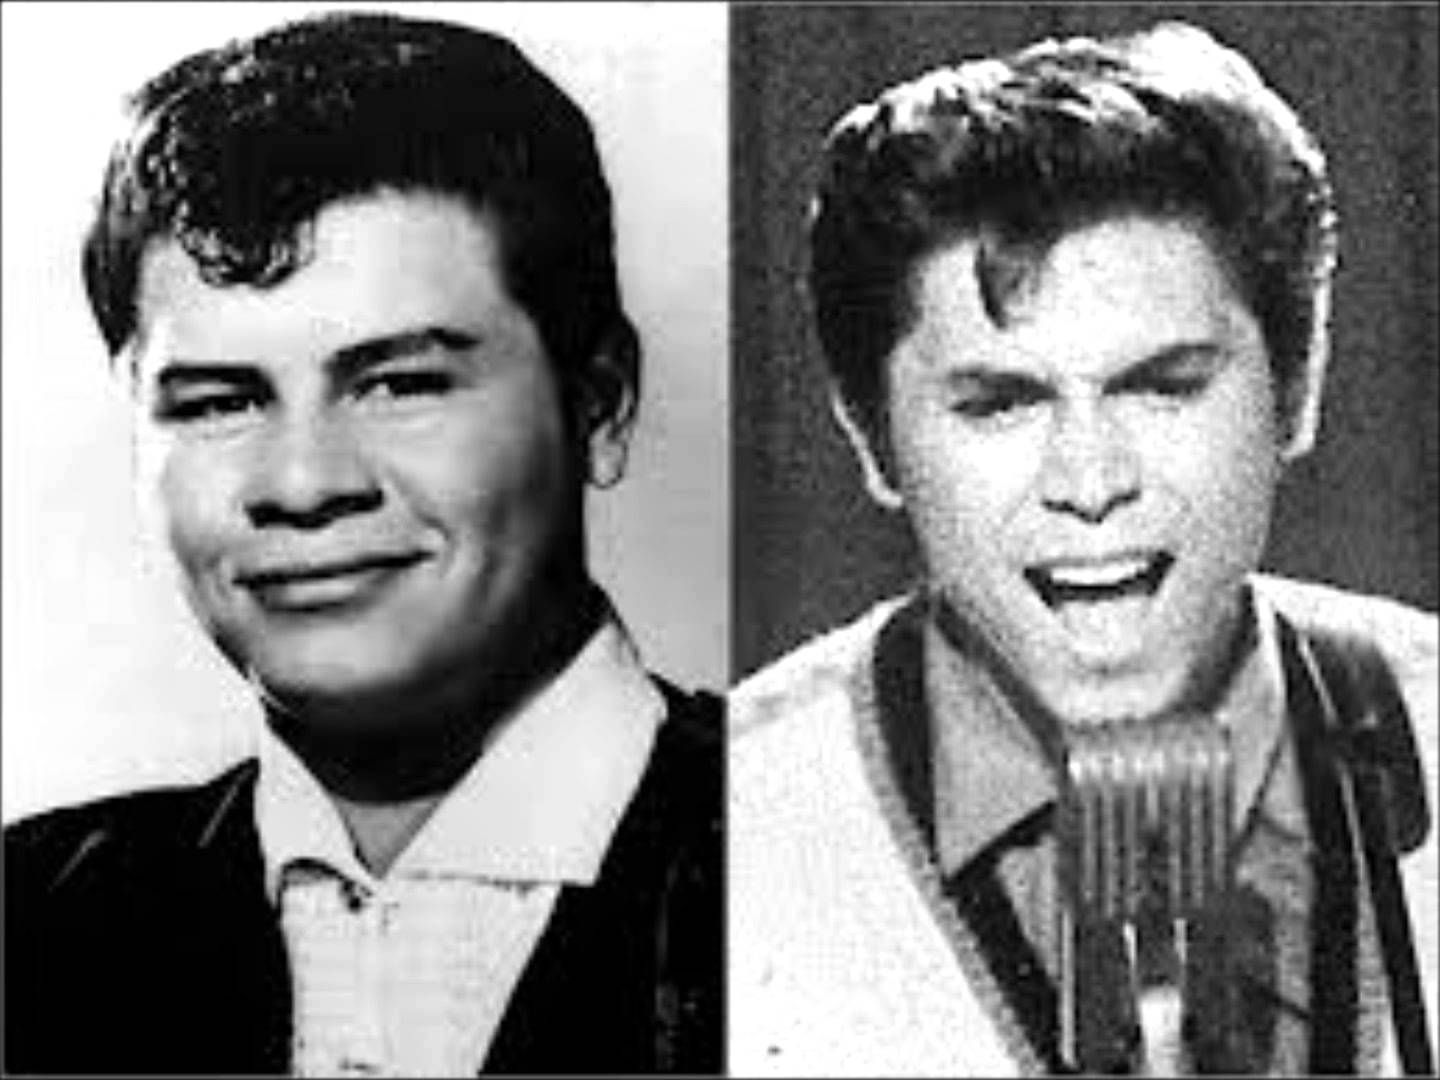 ritchie valen Ritchie valens's songs: listen to songs by ritchie valens on myspace, stream free online music by ritchie valens.